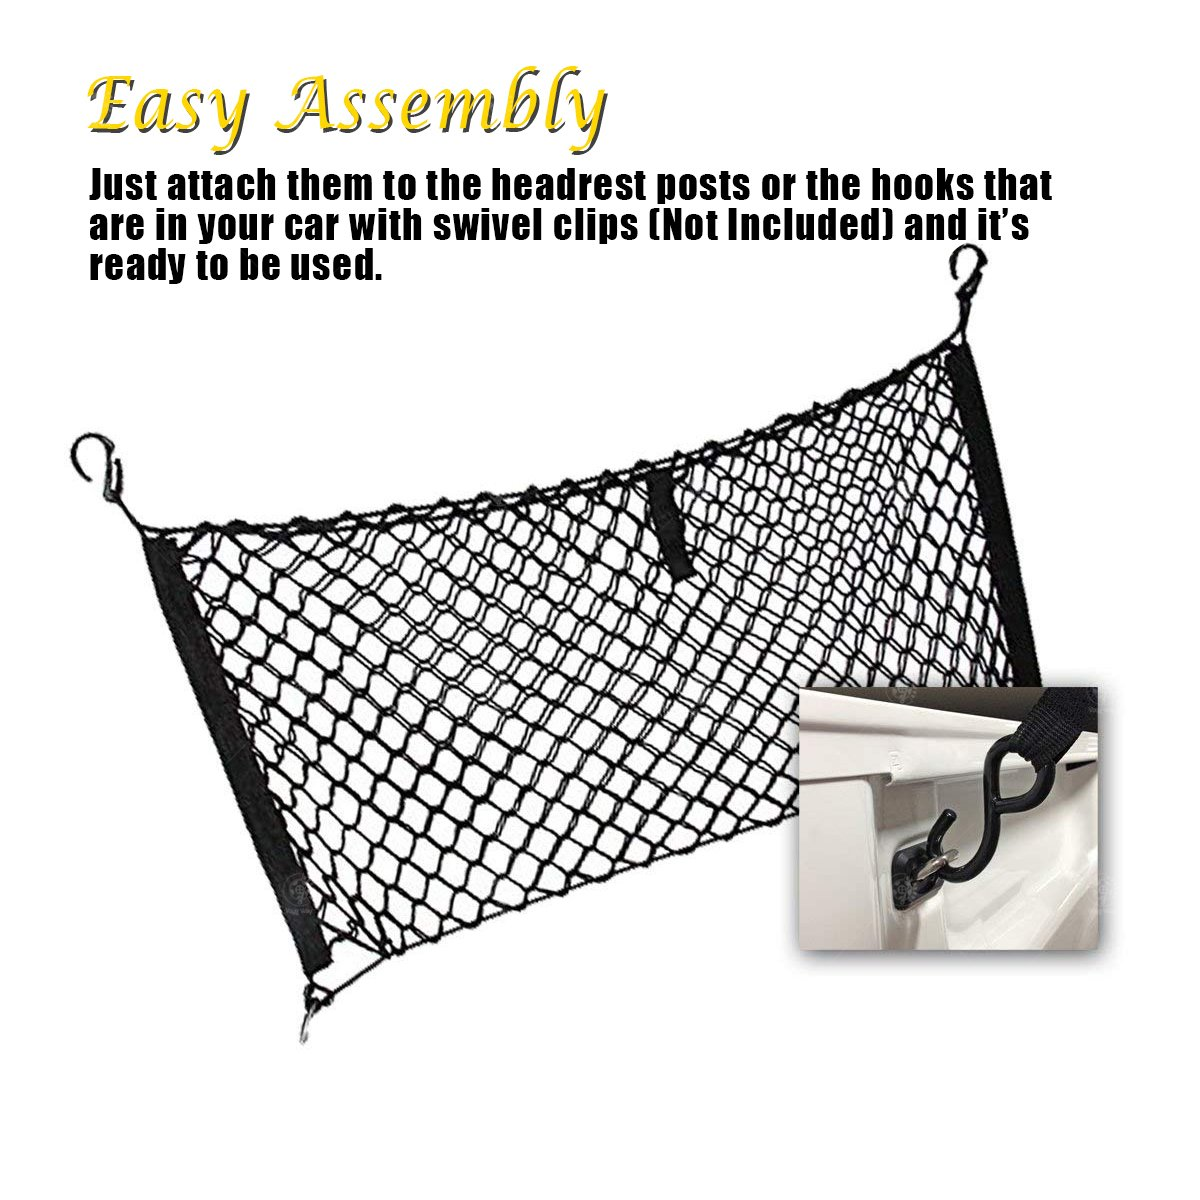 VaygWay Trunk Cargo Net Organizer Grocery Accessories Stretchable Pickup Truck Bed Net Rear Car Storage Organizer Net Mesh Hammock Truck SUV Jeep